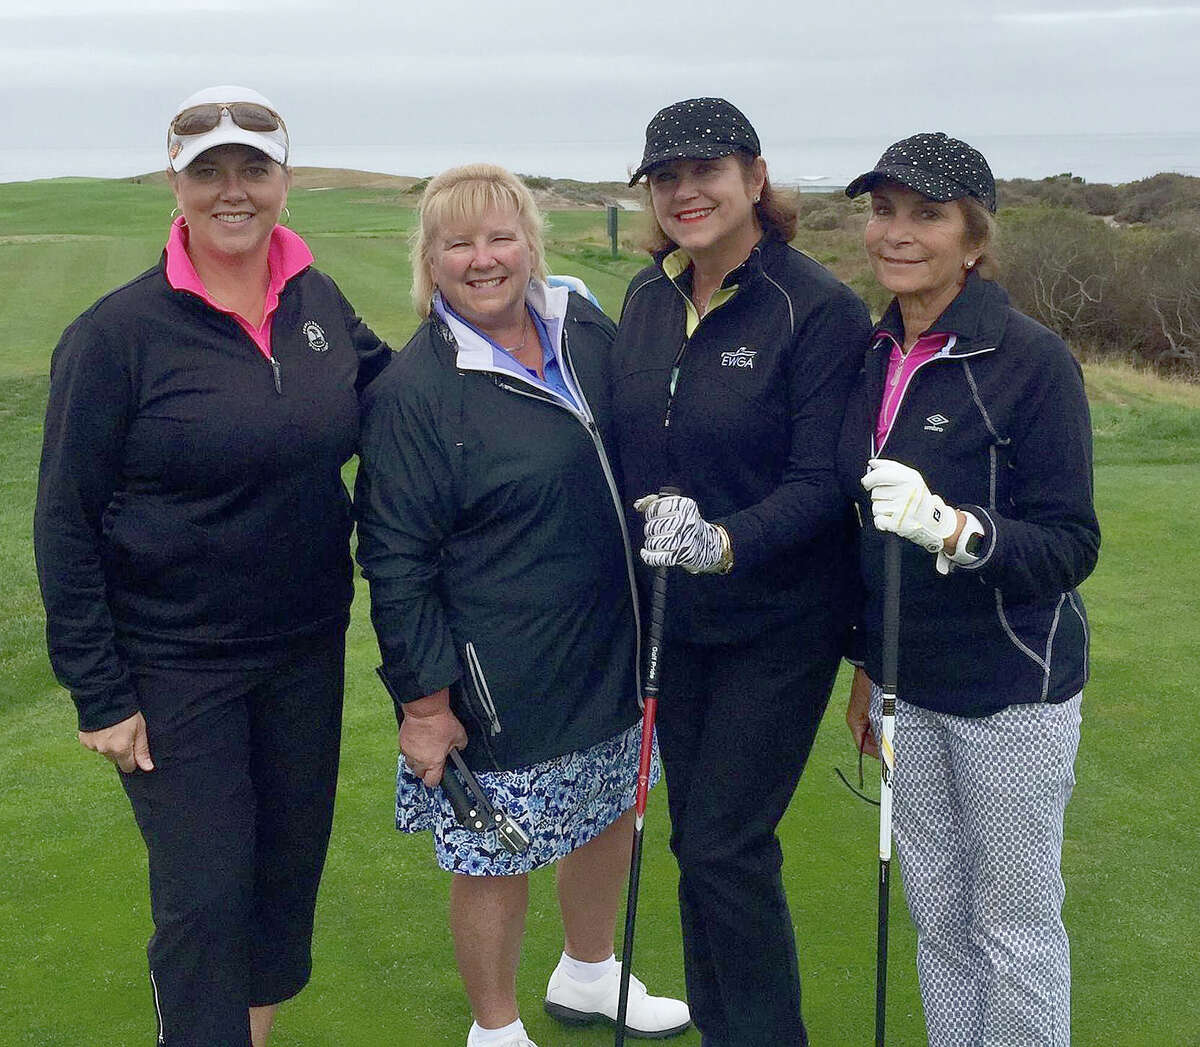 Gail Leonardo Sundling organizes golf trips so women can play on championship courses. Here, Sundling, second from right, joins golf partners, from left, Michelle Walls, Gail Czelusniak and Carol Aiello on a trip to the Monterey Peninsula. (Provided)